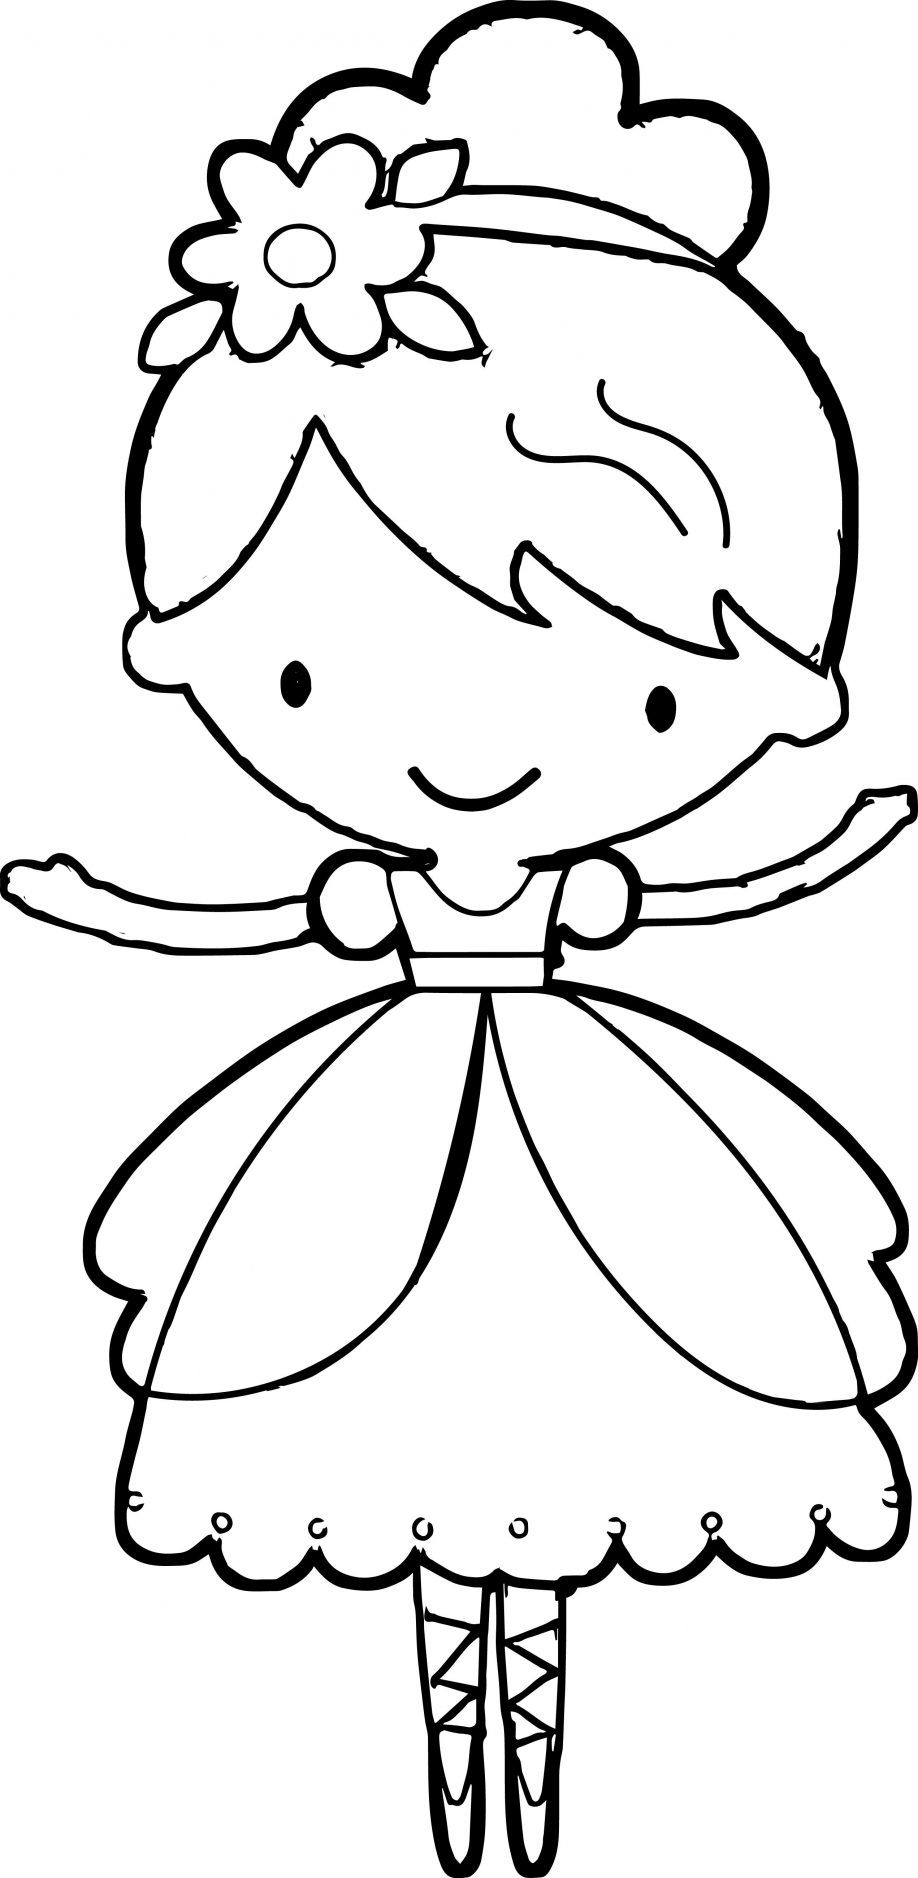 918x1878 Unbelievable Jazz Dance Coloring Sheets Page Image Of Ballet